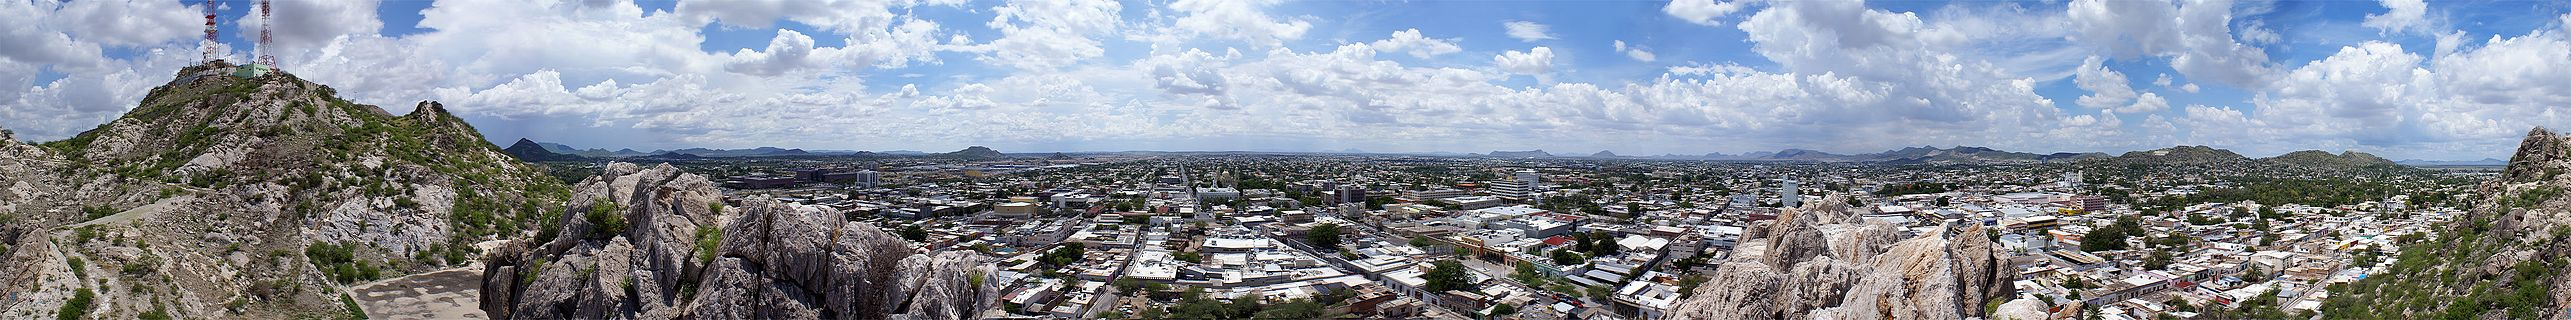 Hermosillo Cityview.jpg